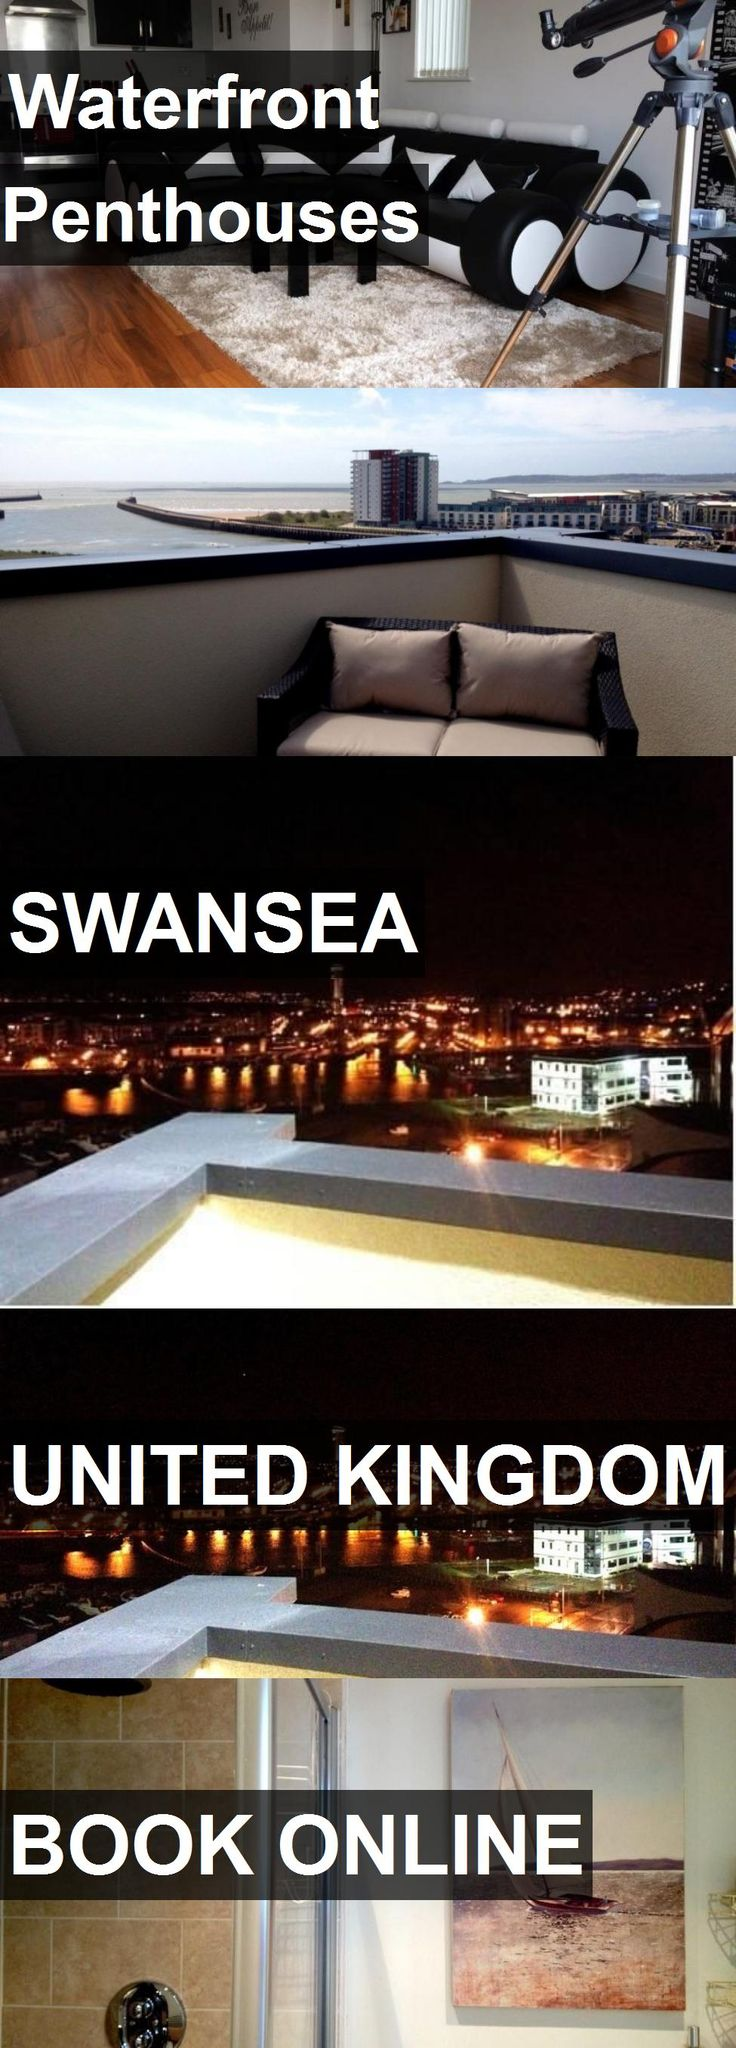 Hotel Waterfront Penthouses in Swansea, United Kingdom. For more information, photos, reviews and best prices please follow the link. #UnitedKingdom #Swansea #travel #vacation #hotel